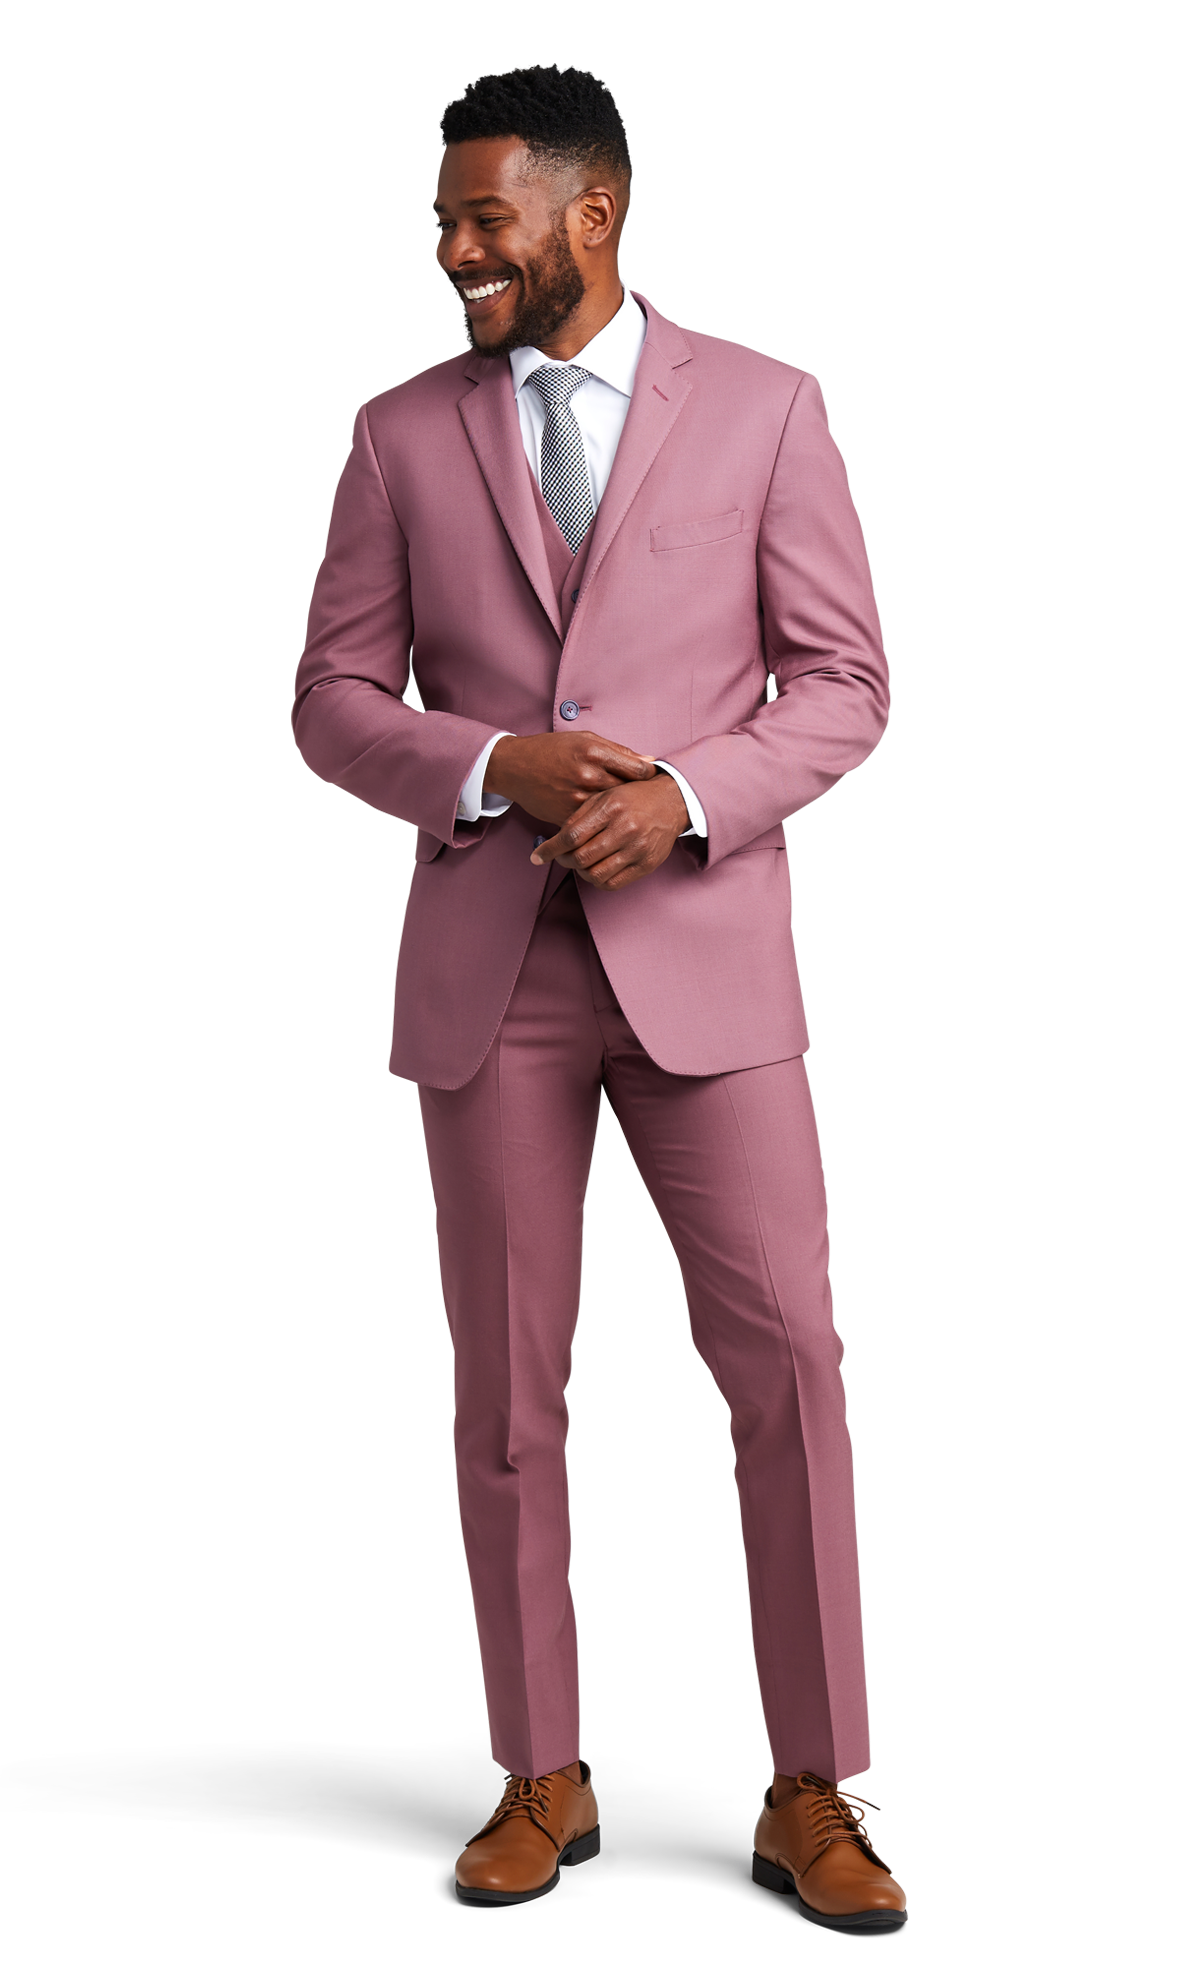 Rose Pink Suit Online Rental 2